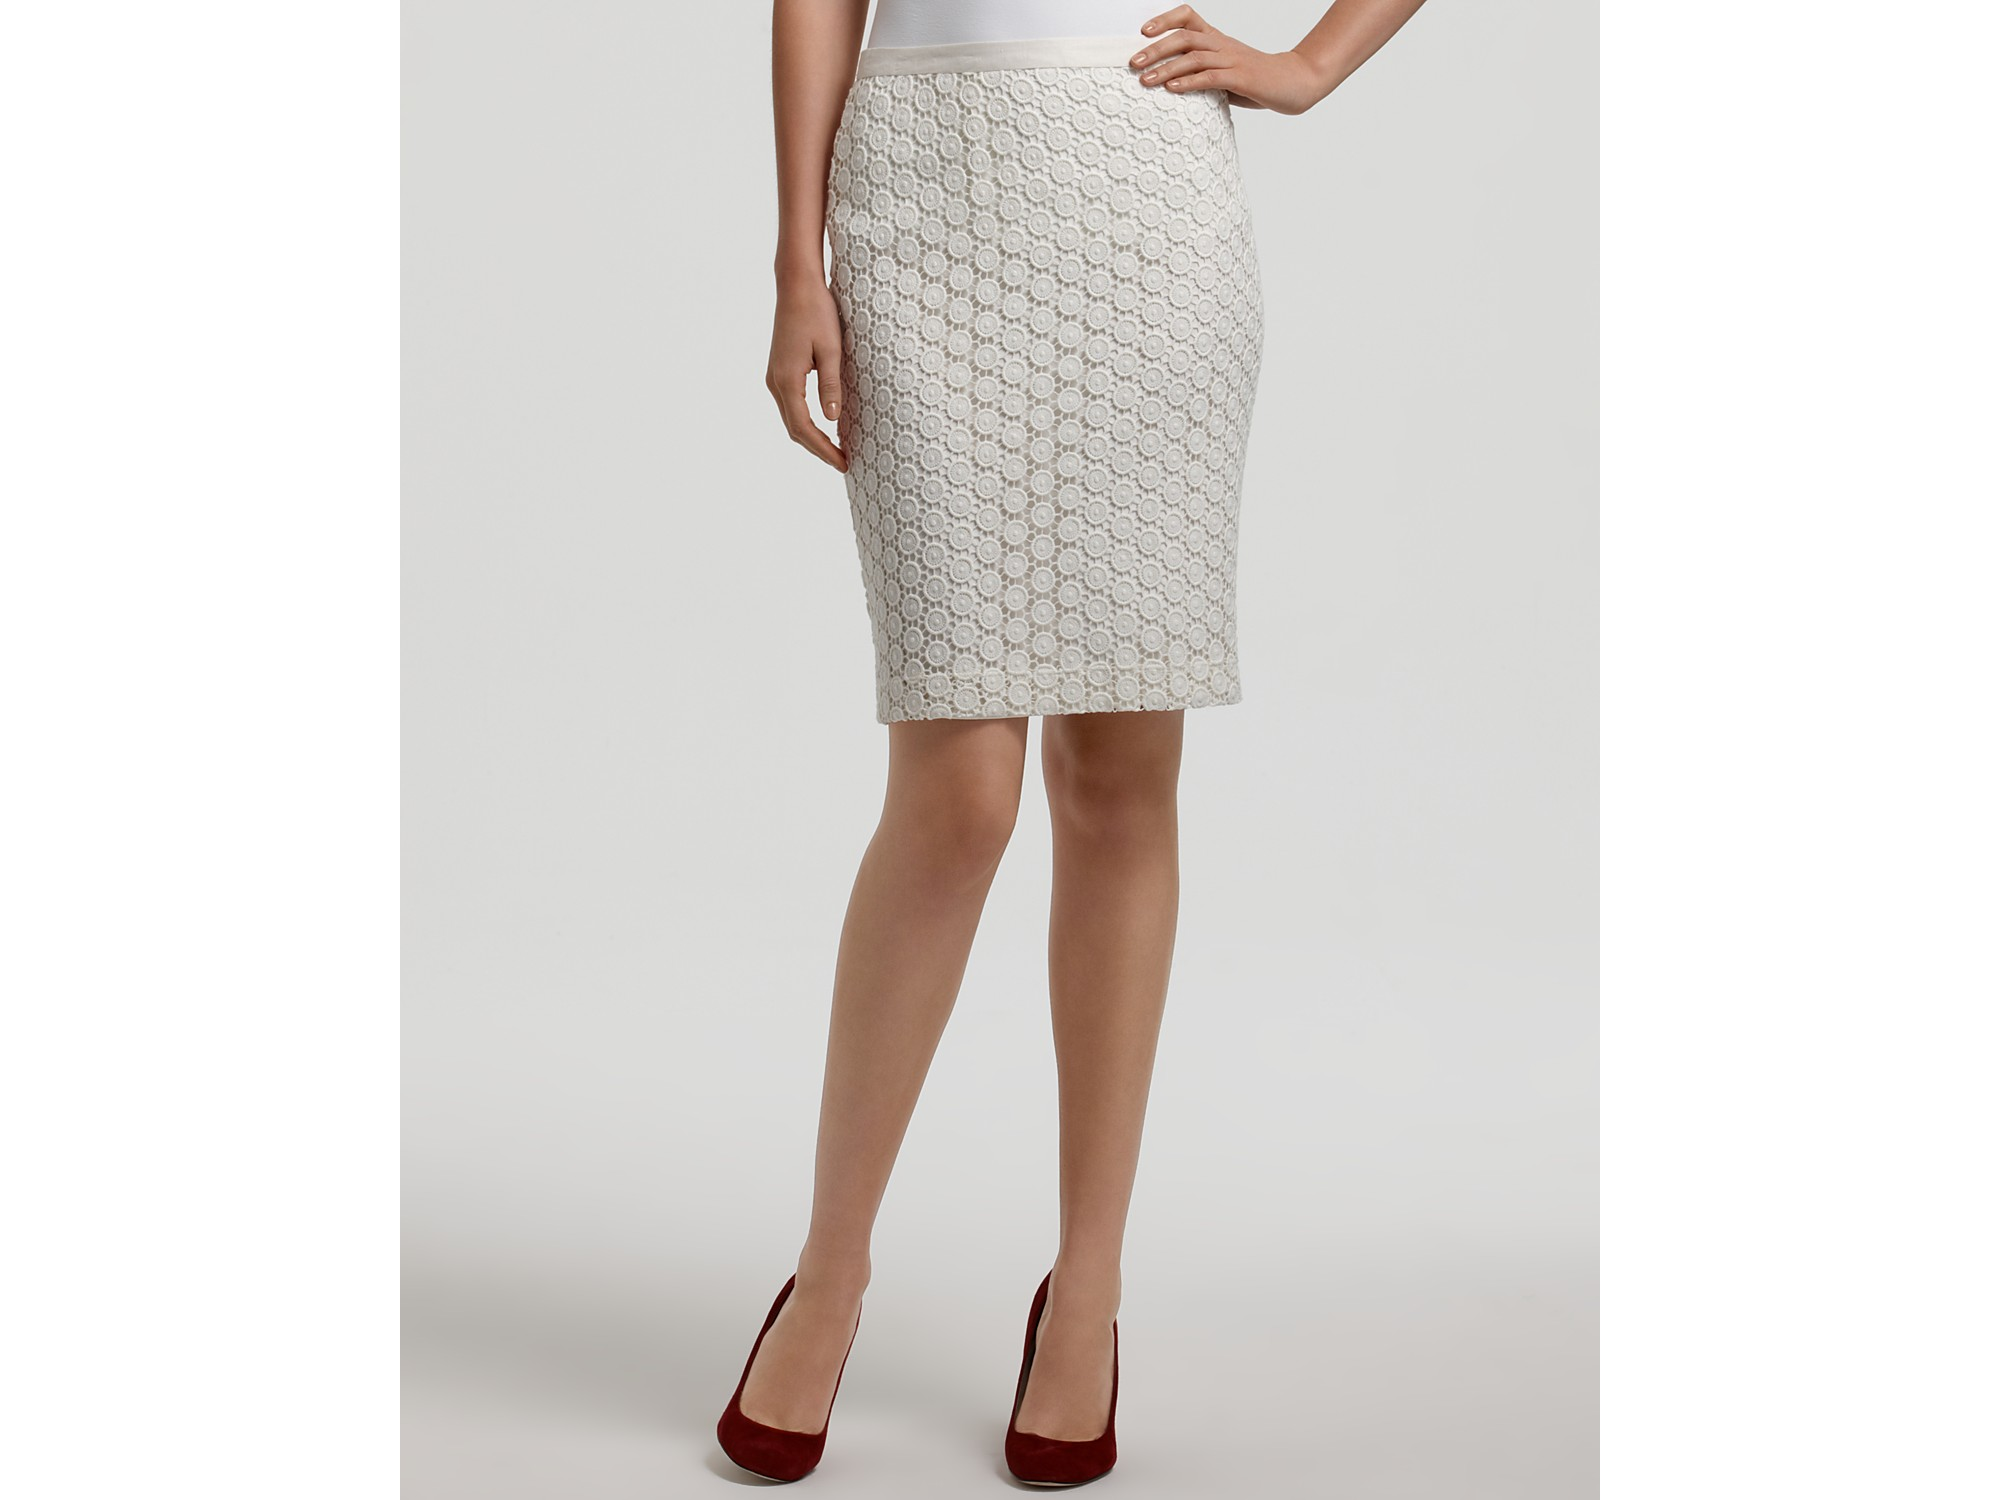 Karen kane Lace Pencil Skirt in White | Lyst